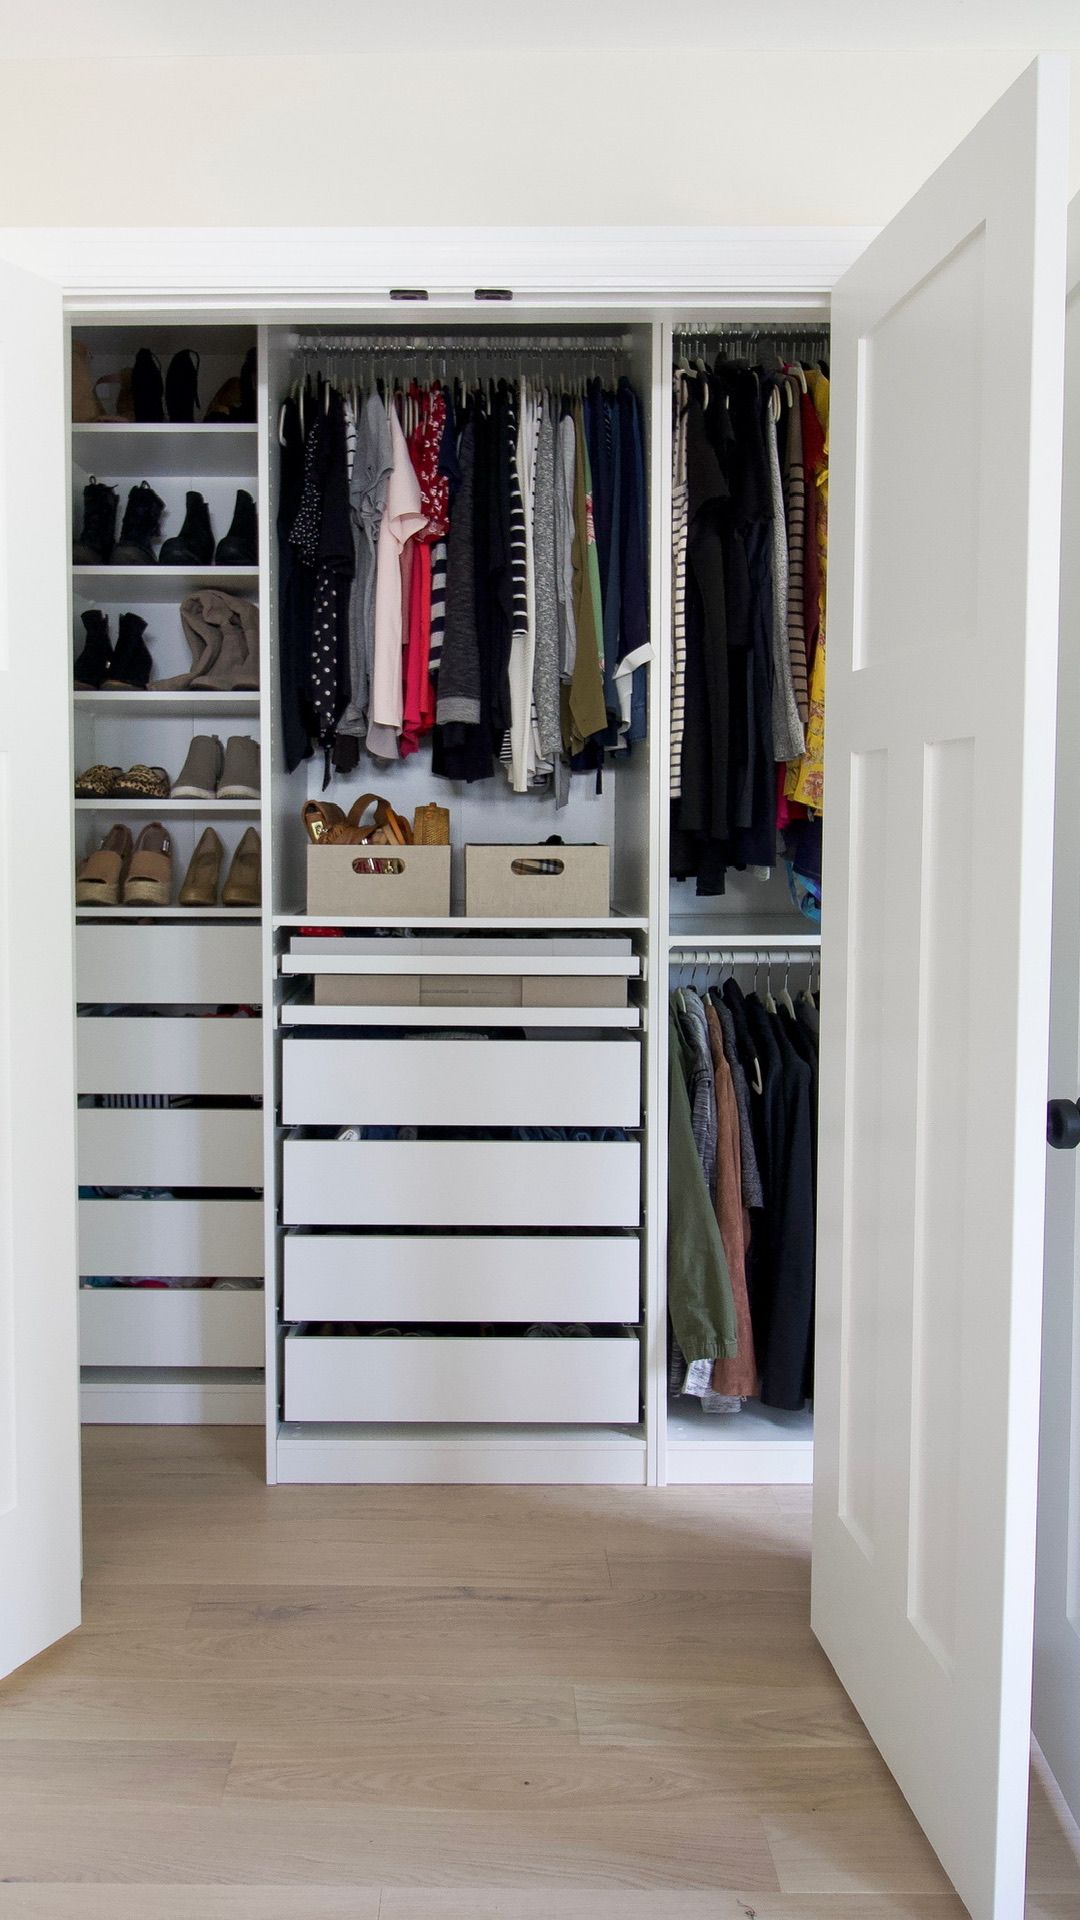 We recently installed the IKEA PAX wardrobe in our master bedroom closet. Here are my top 5 tips to install this DIY closet system. It's a lot of time and effort, but so worth it!